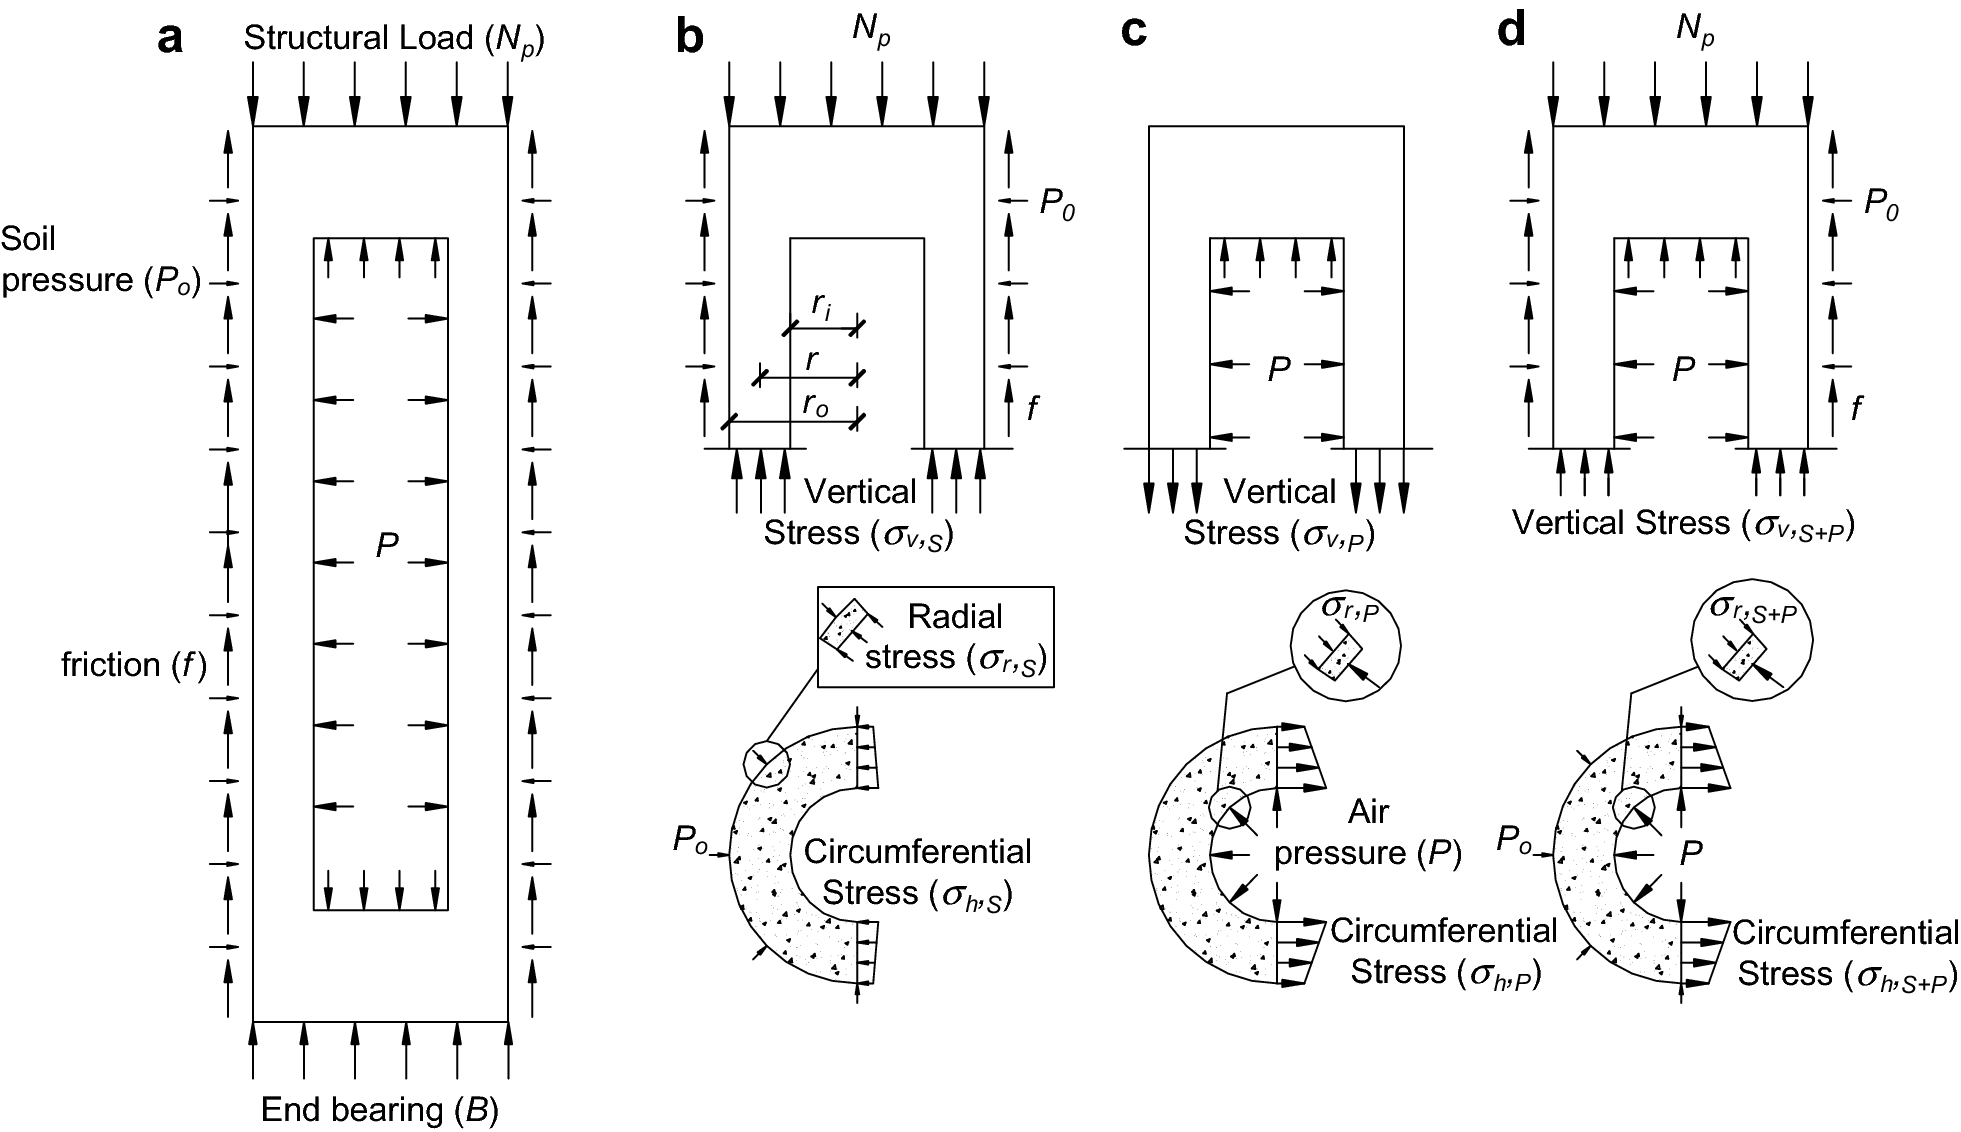 Structural Responses of Reinforced Concrete Pile Foundations